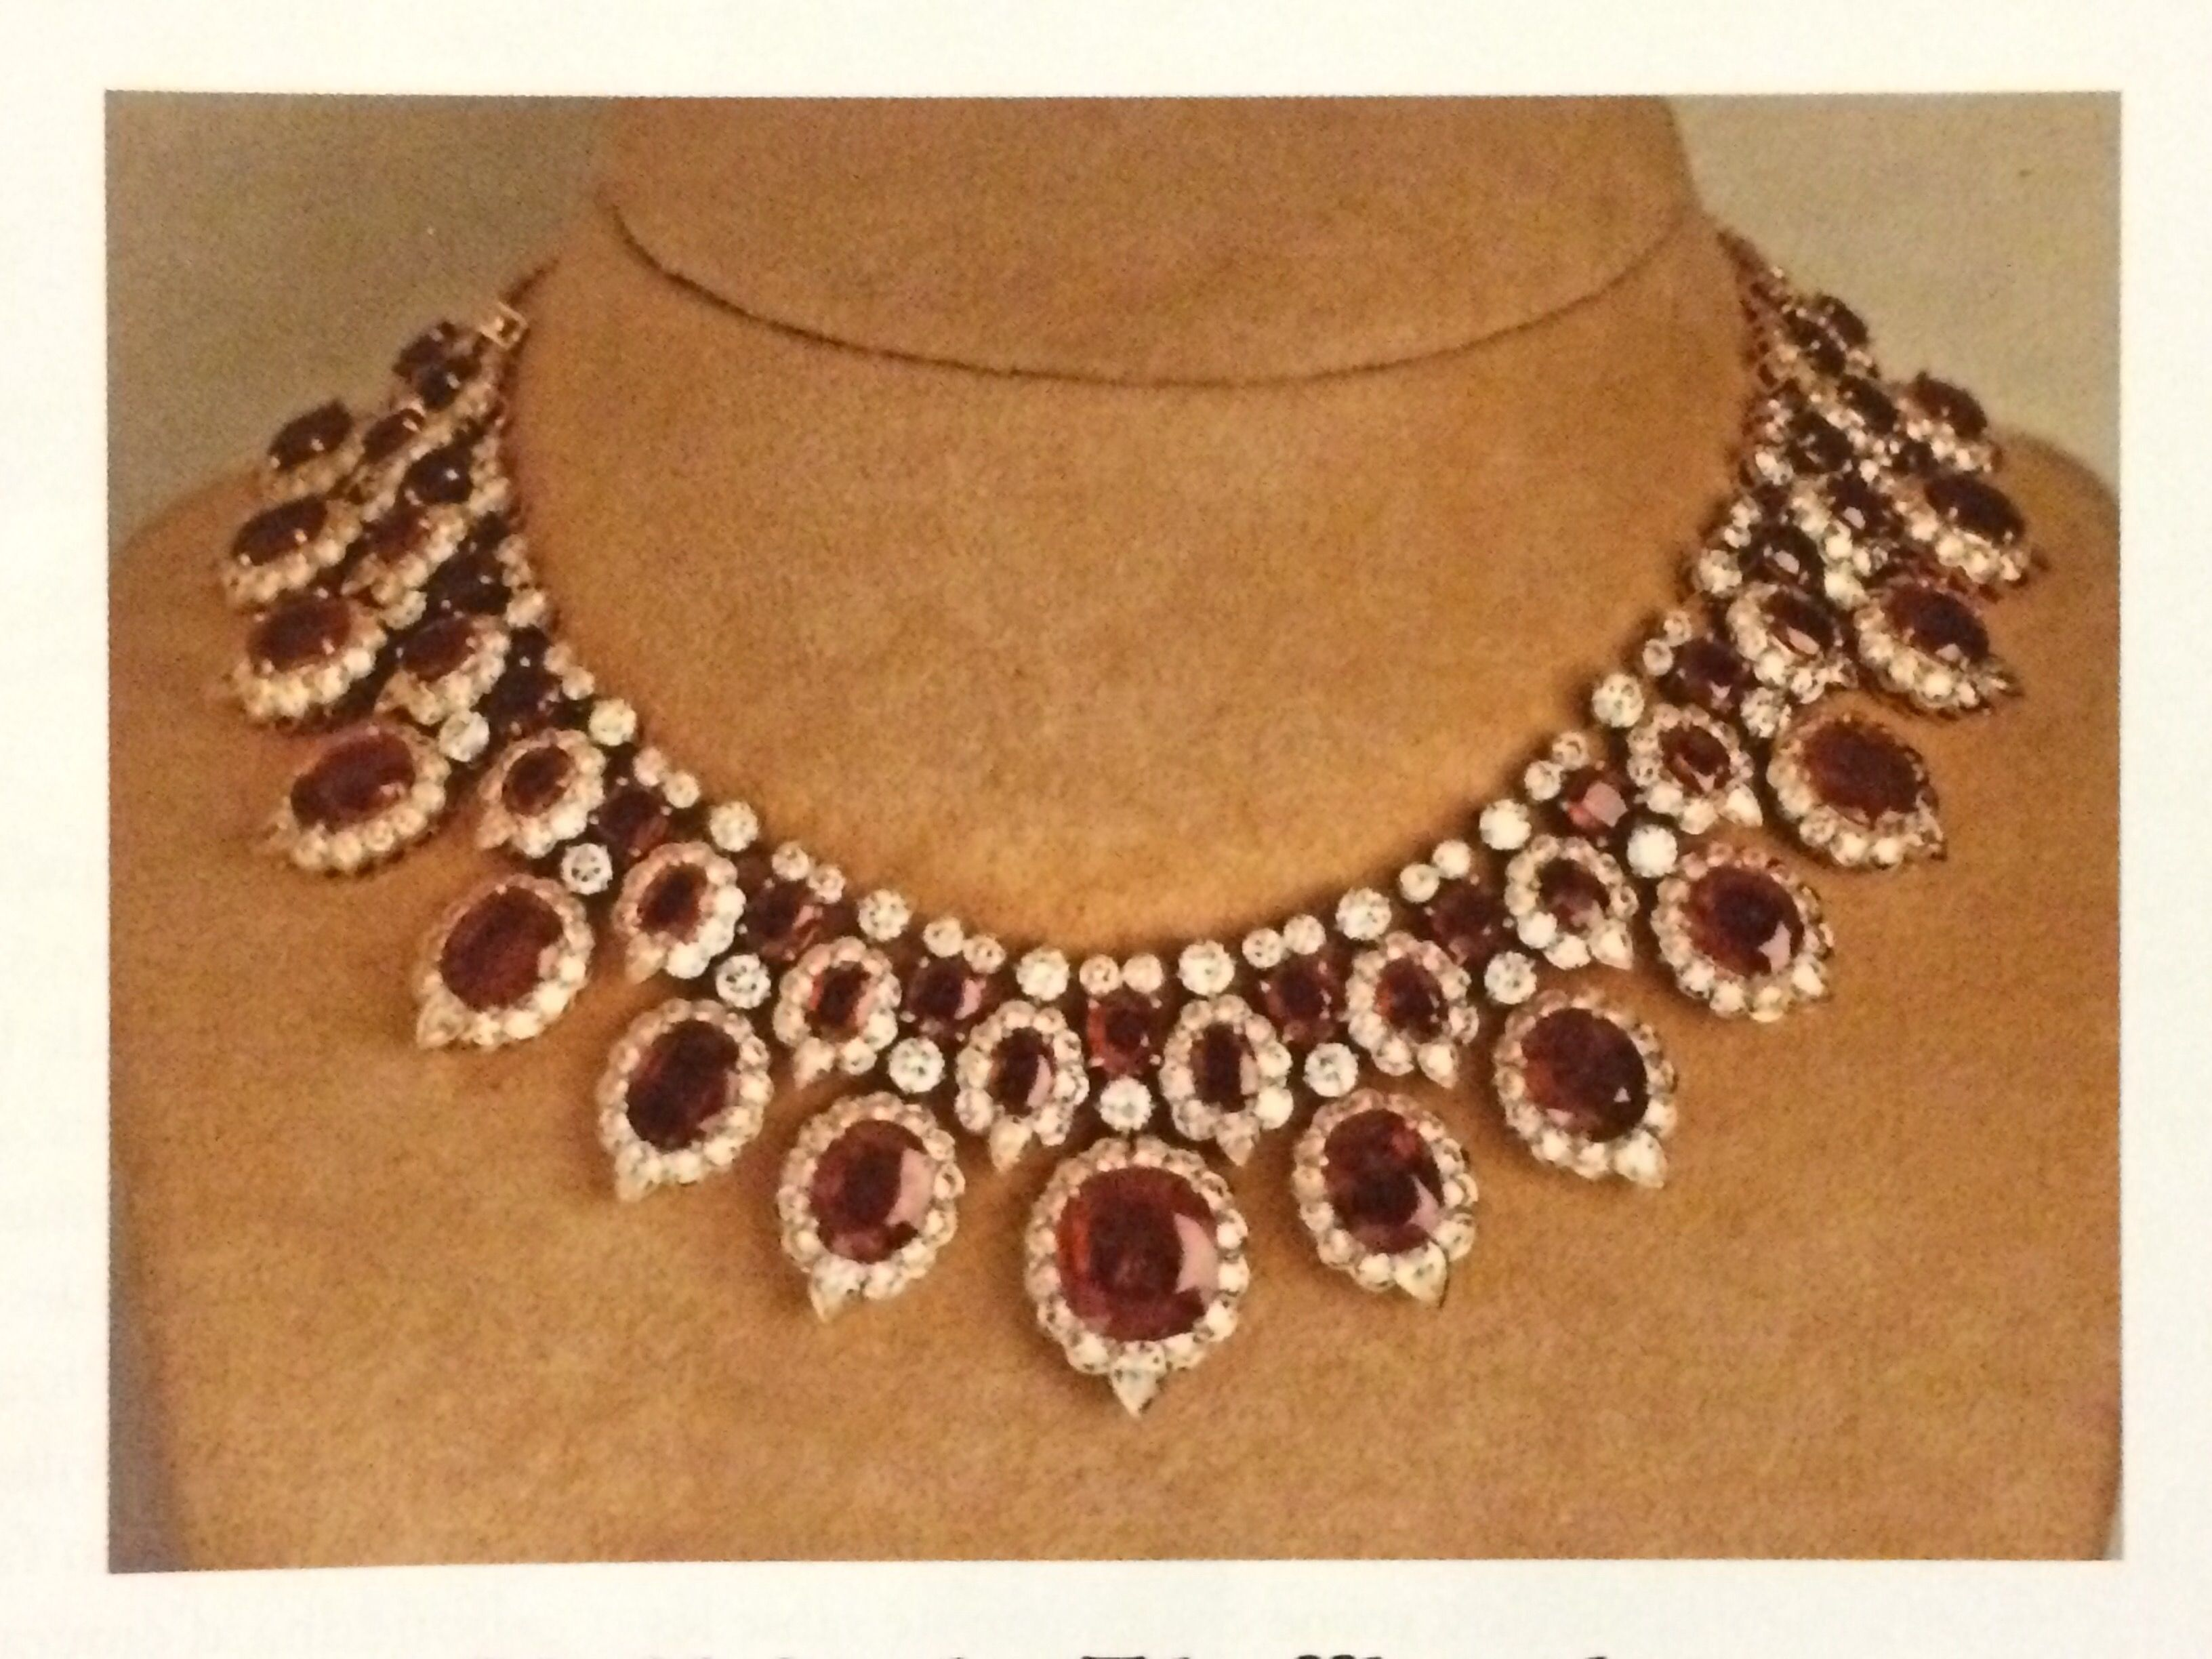 Ruby and diamond necklace by Van Cleef & Arpels belonged to HM Queen Sirikit, 1980s.